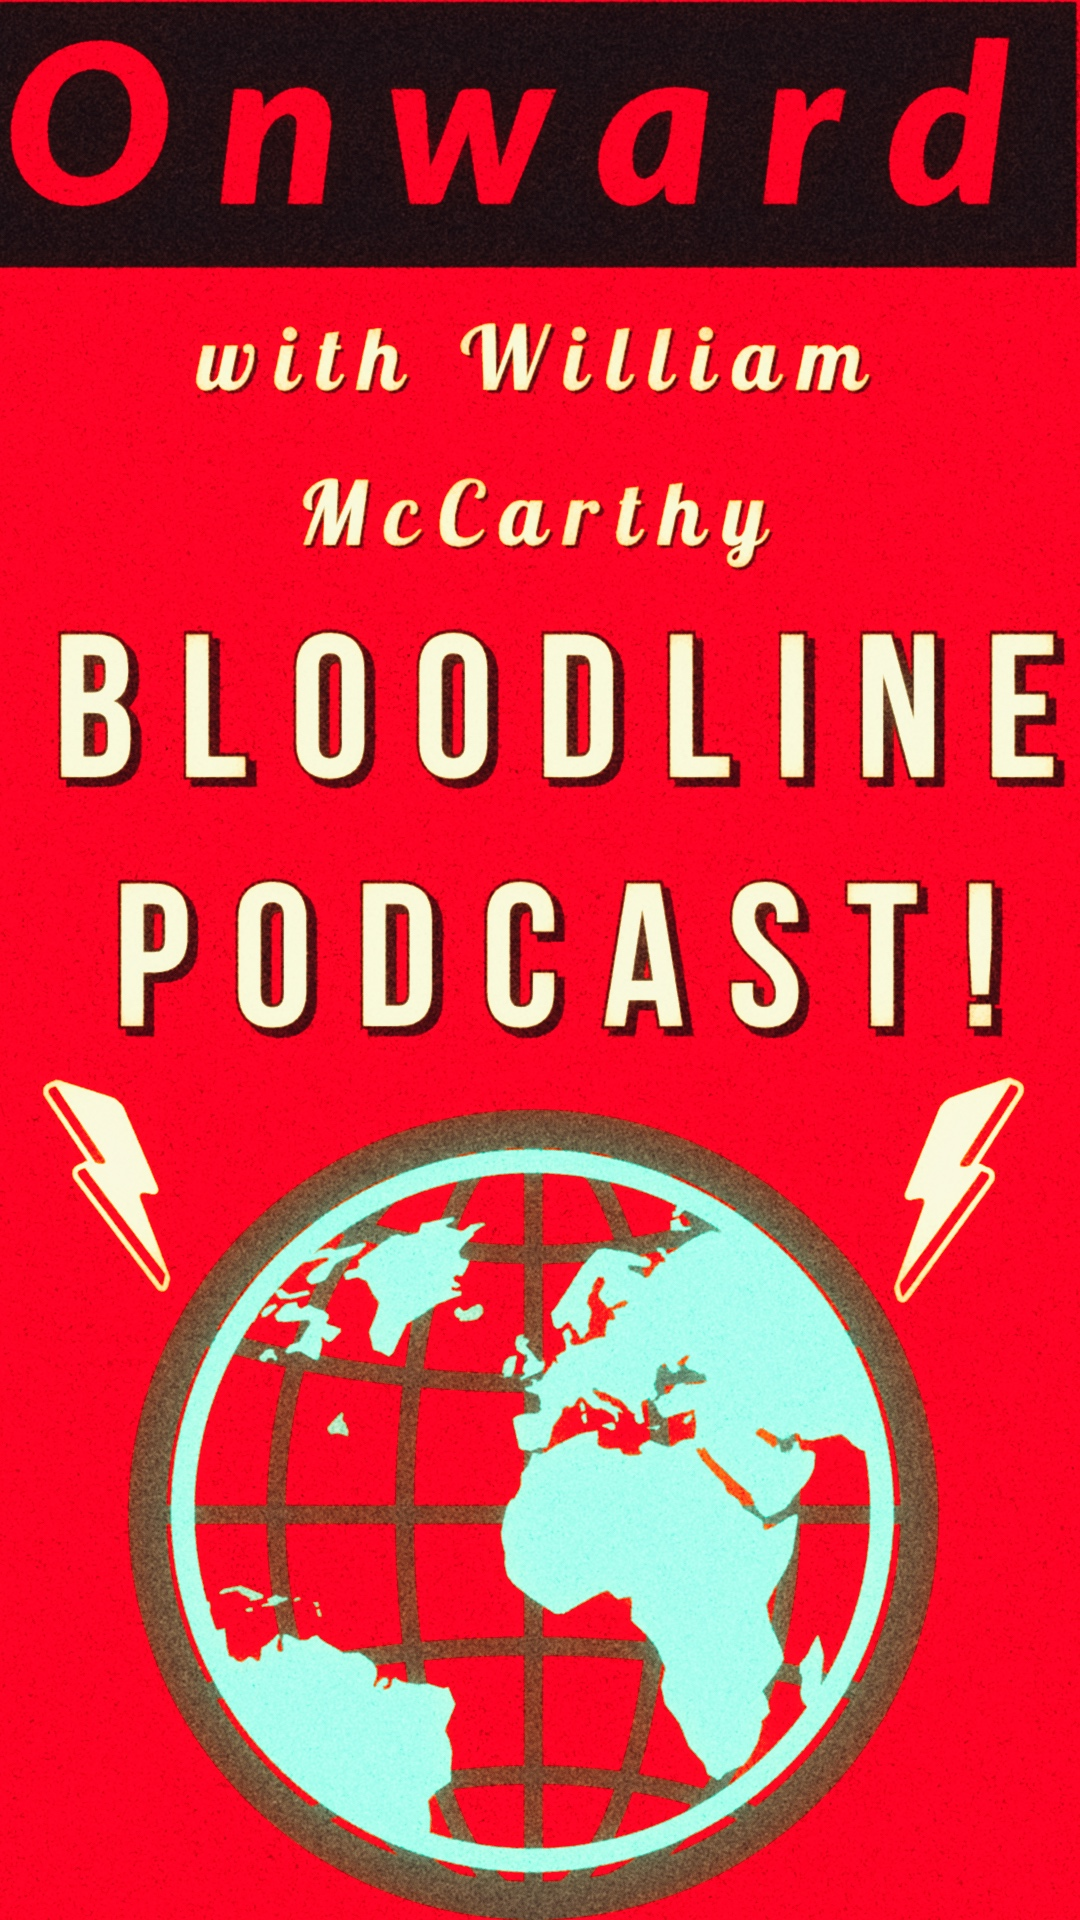 The Bloodline Podcast